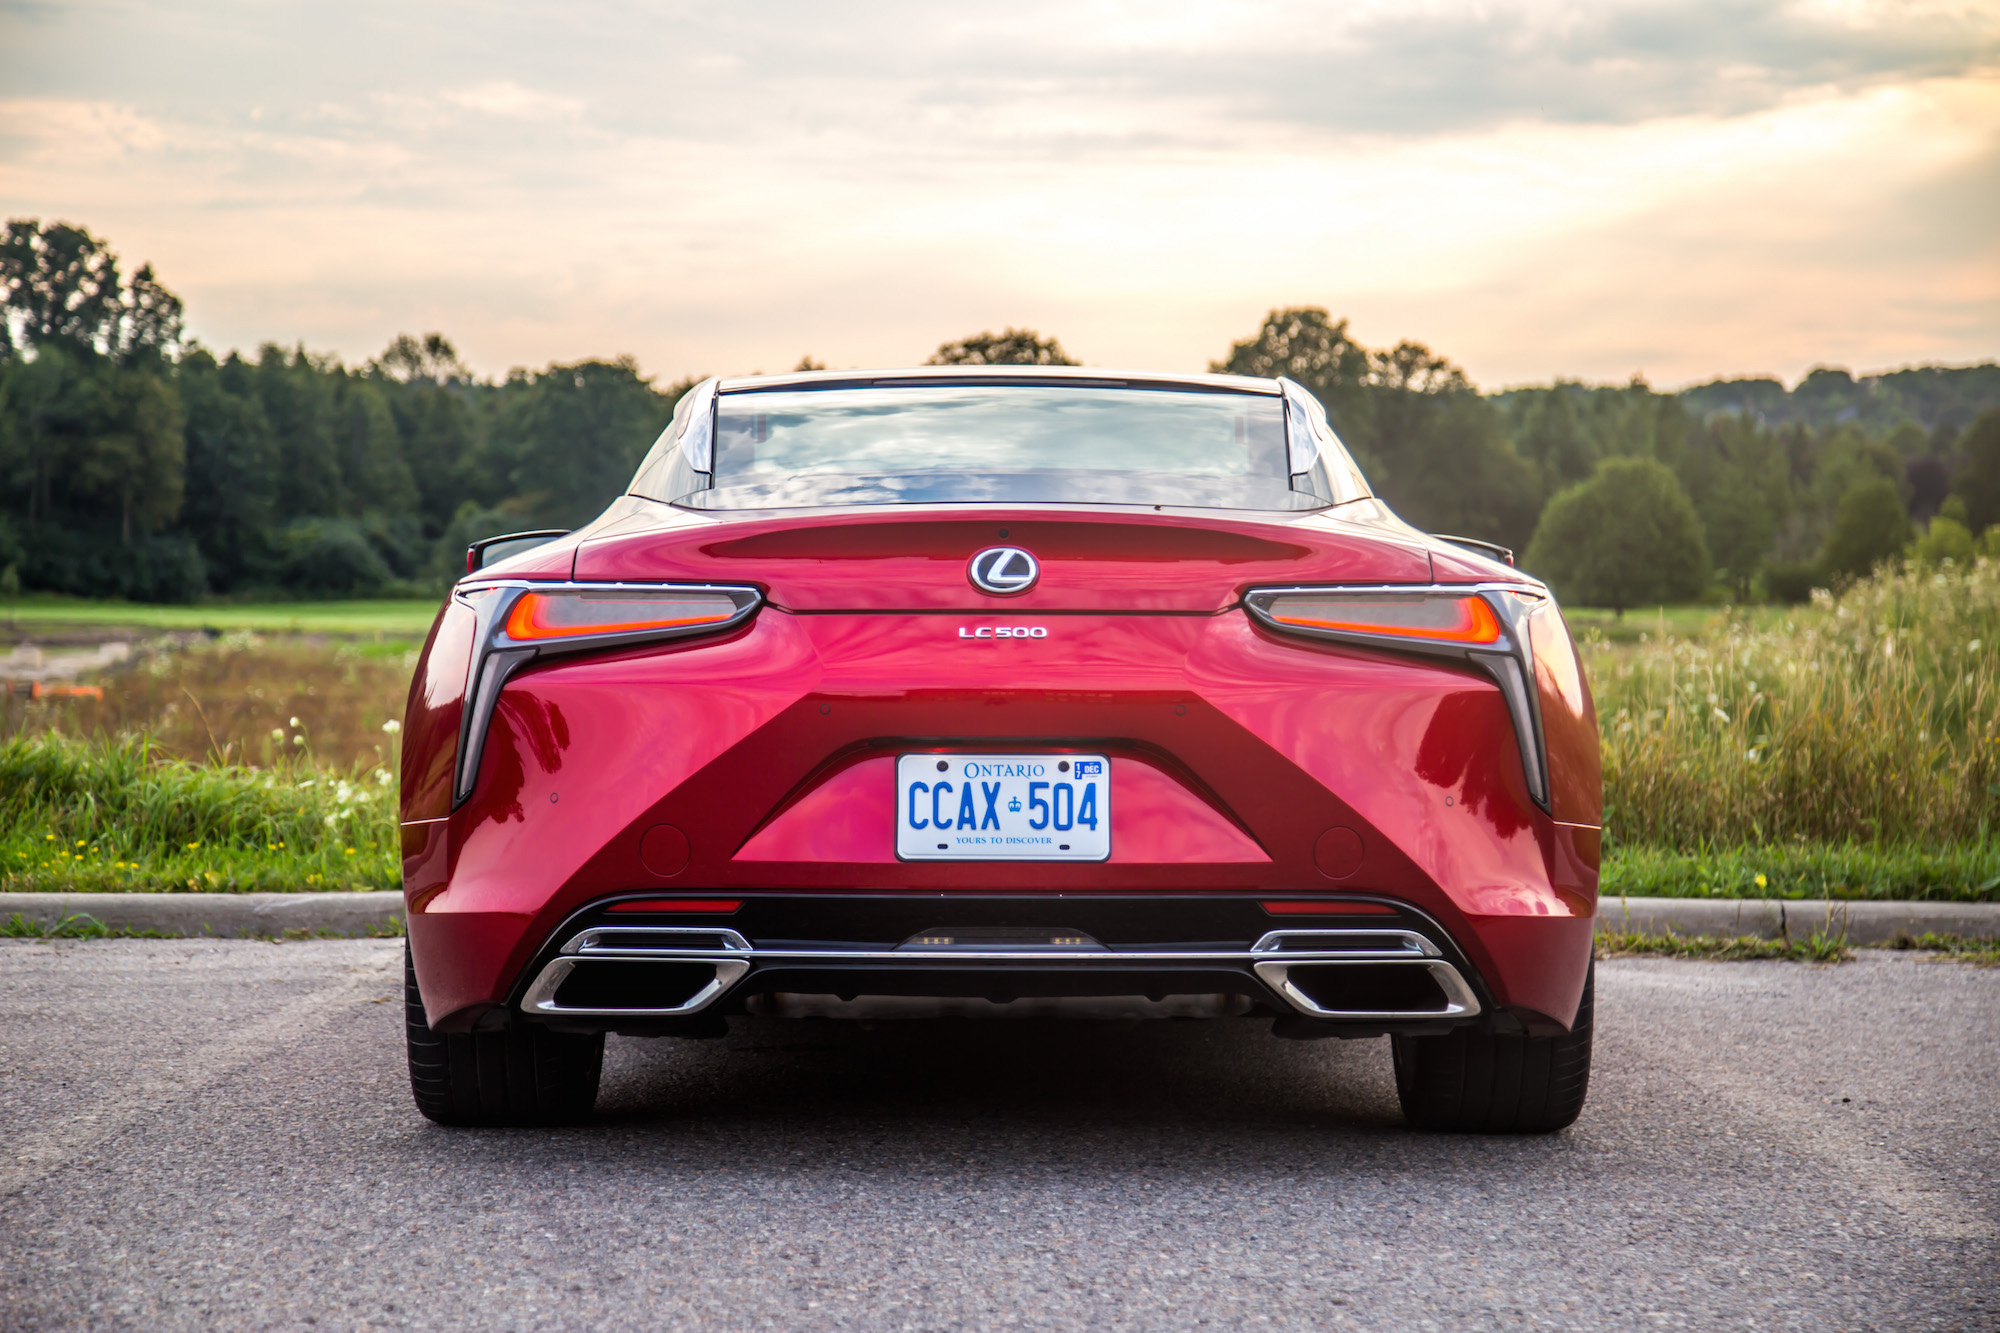 2018 lexus coupe. plain coupe 2018 lexus lc 500 infrared paint rear view exhausts  throughout lexus coupe